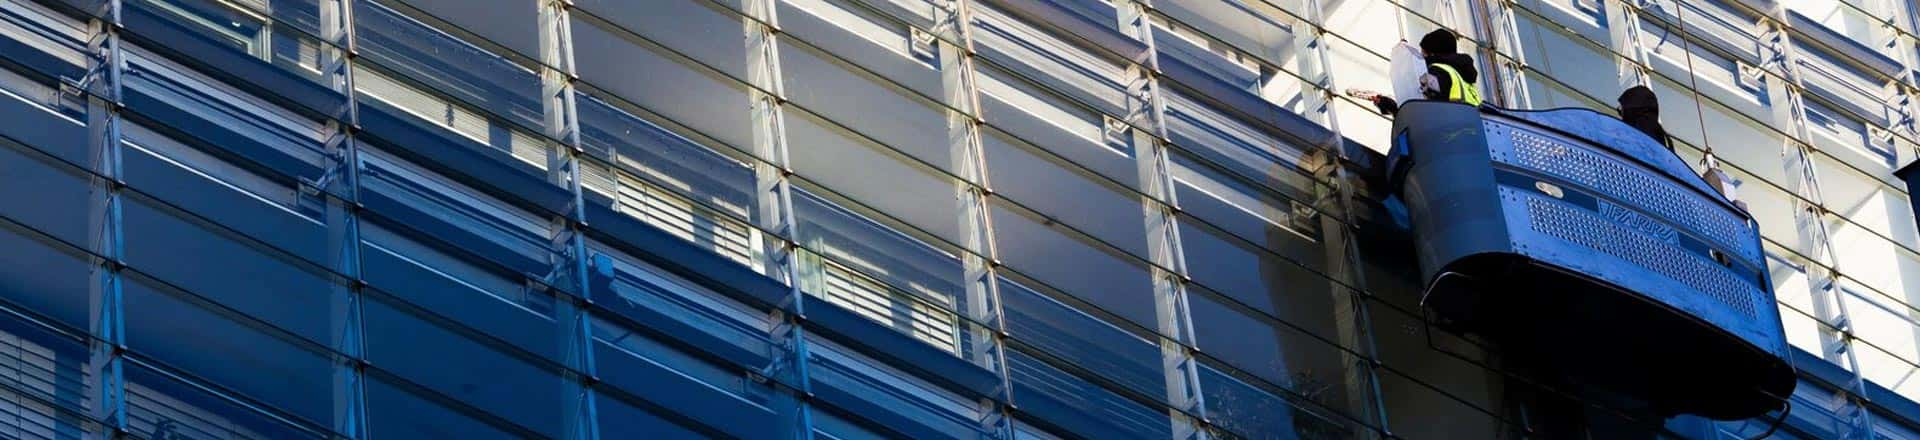 Cradle Window Cleaning by HCS Cleaning Services